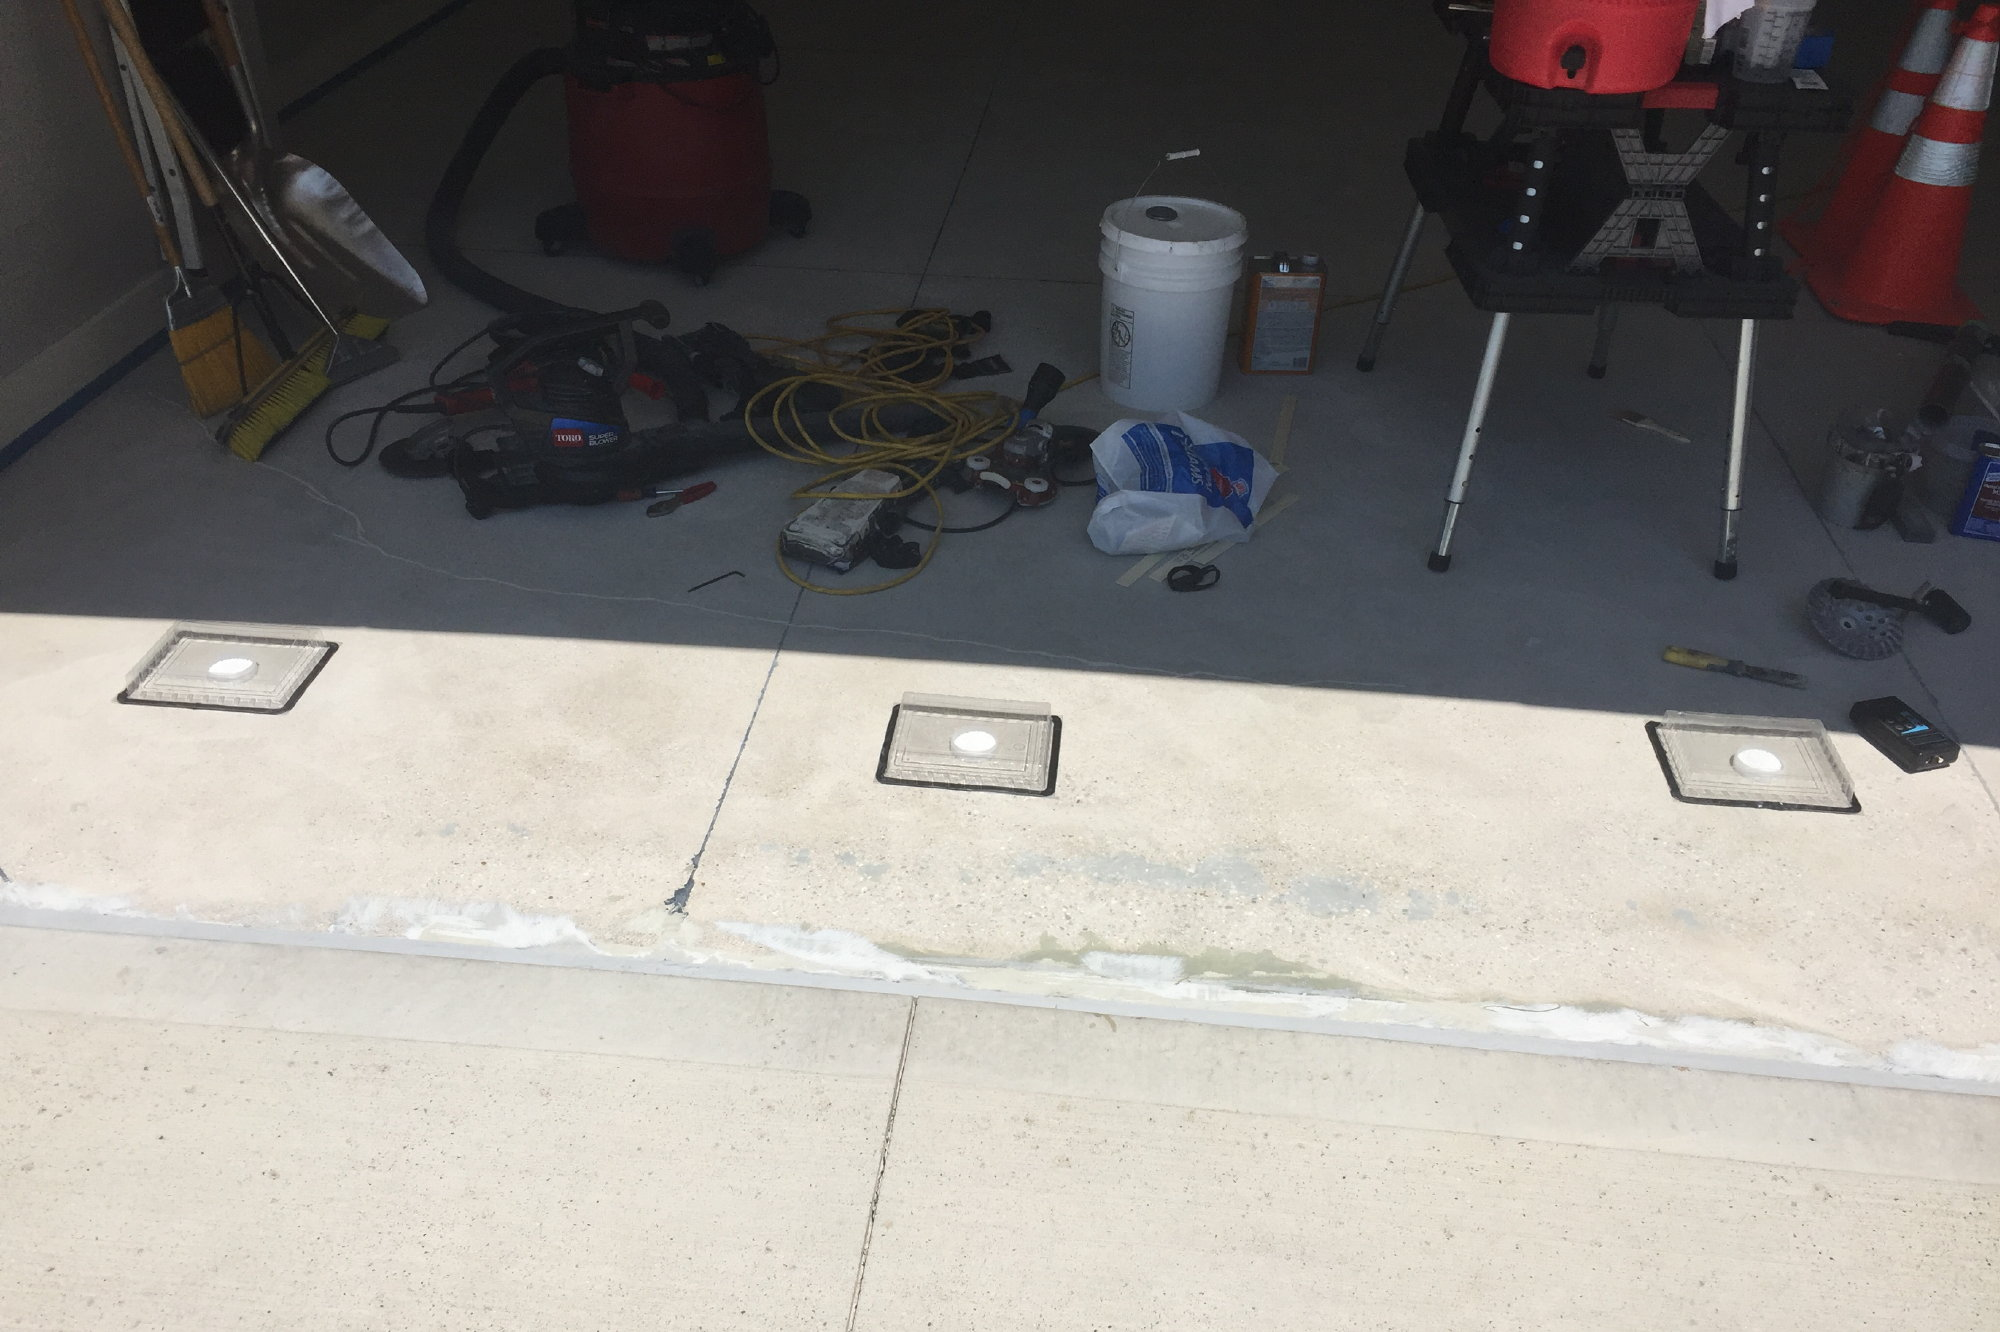 Excess moisture in this new garage floor due to improper rainwater drainage caused crumbling, pitting and cracking after only 2 years. Here, we are performing moisture vapor transmission testing to determine the extent of the problem.